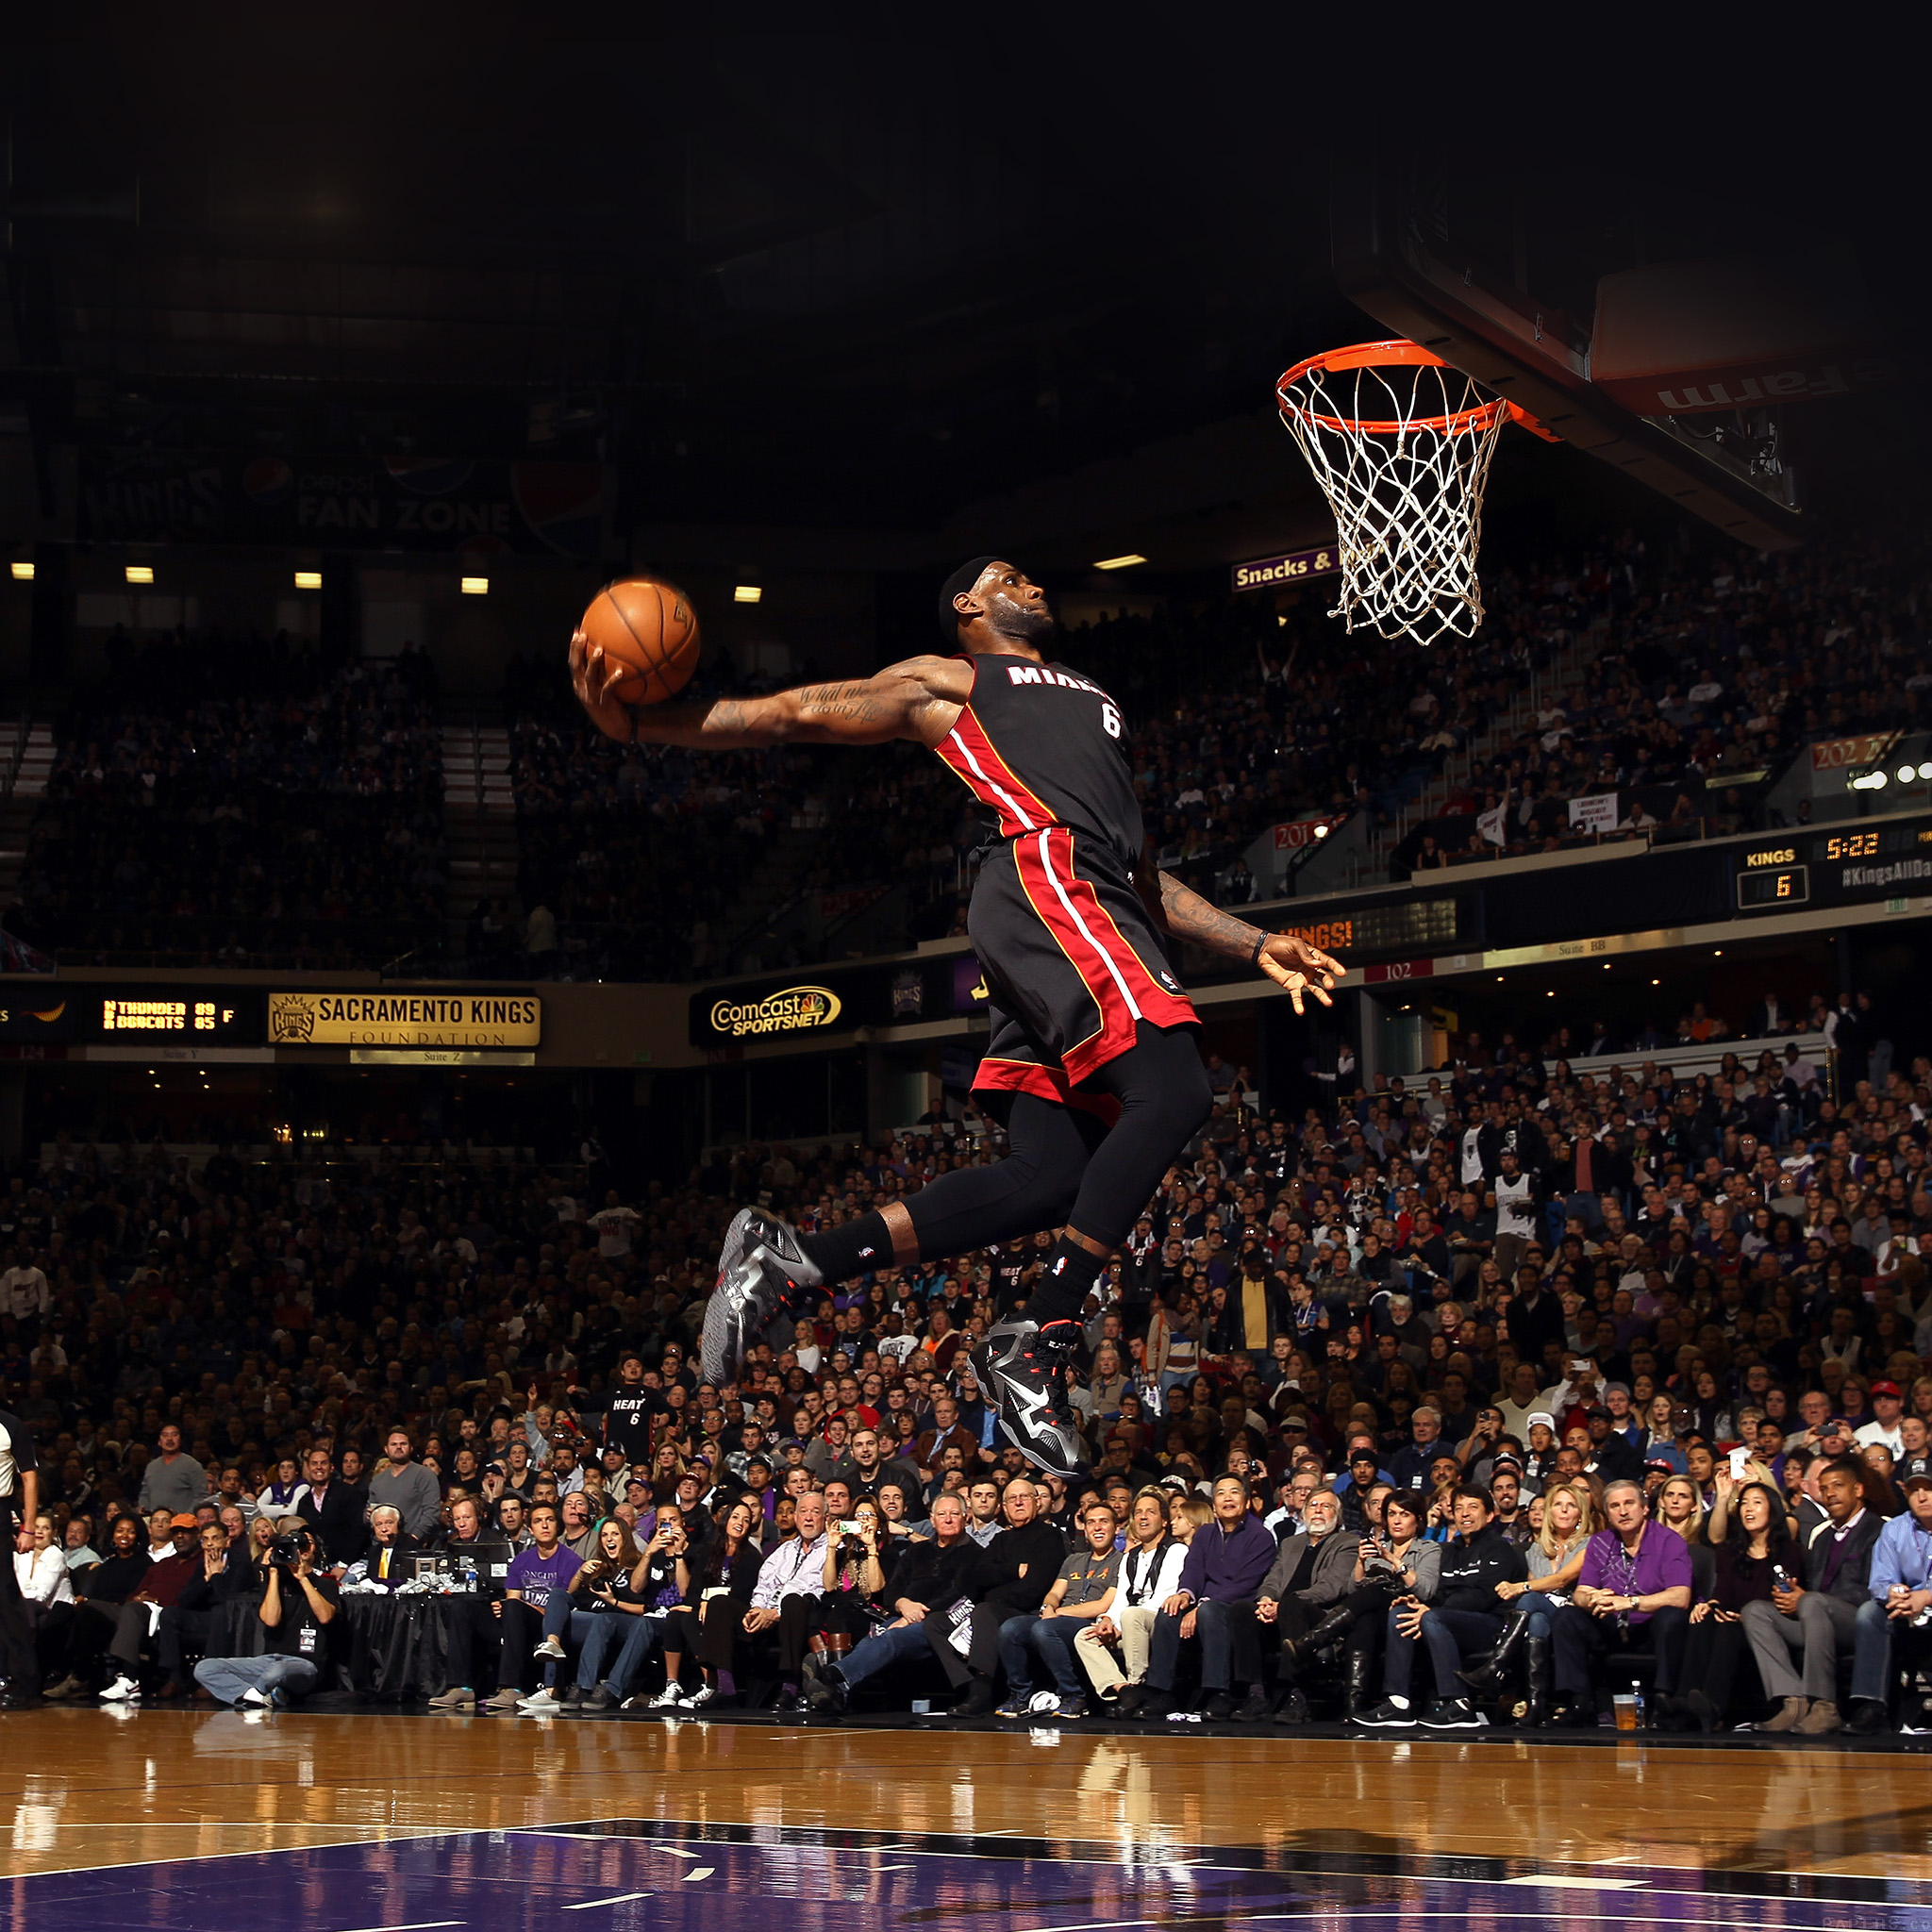 Ipad lebron james dunk nba free apple papers sacramento ca december 27 lebron james 6 of the miami heat dunks the ball during their game against the sacramento kings at sleep train arena on voltagebd Images